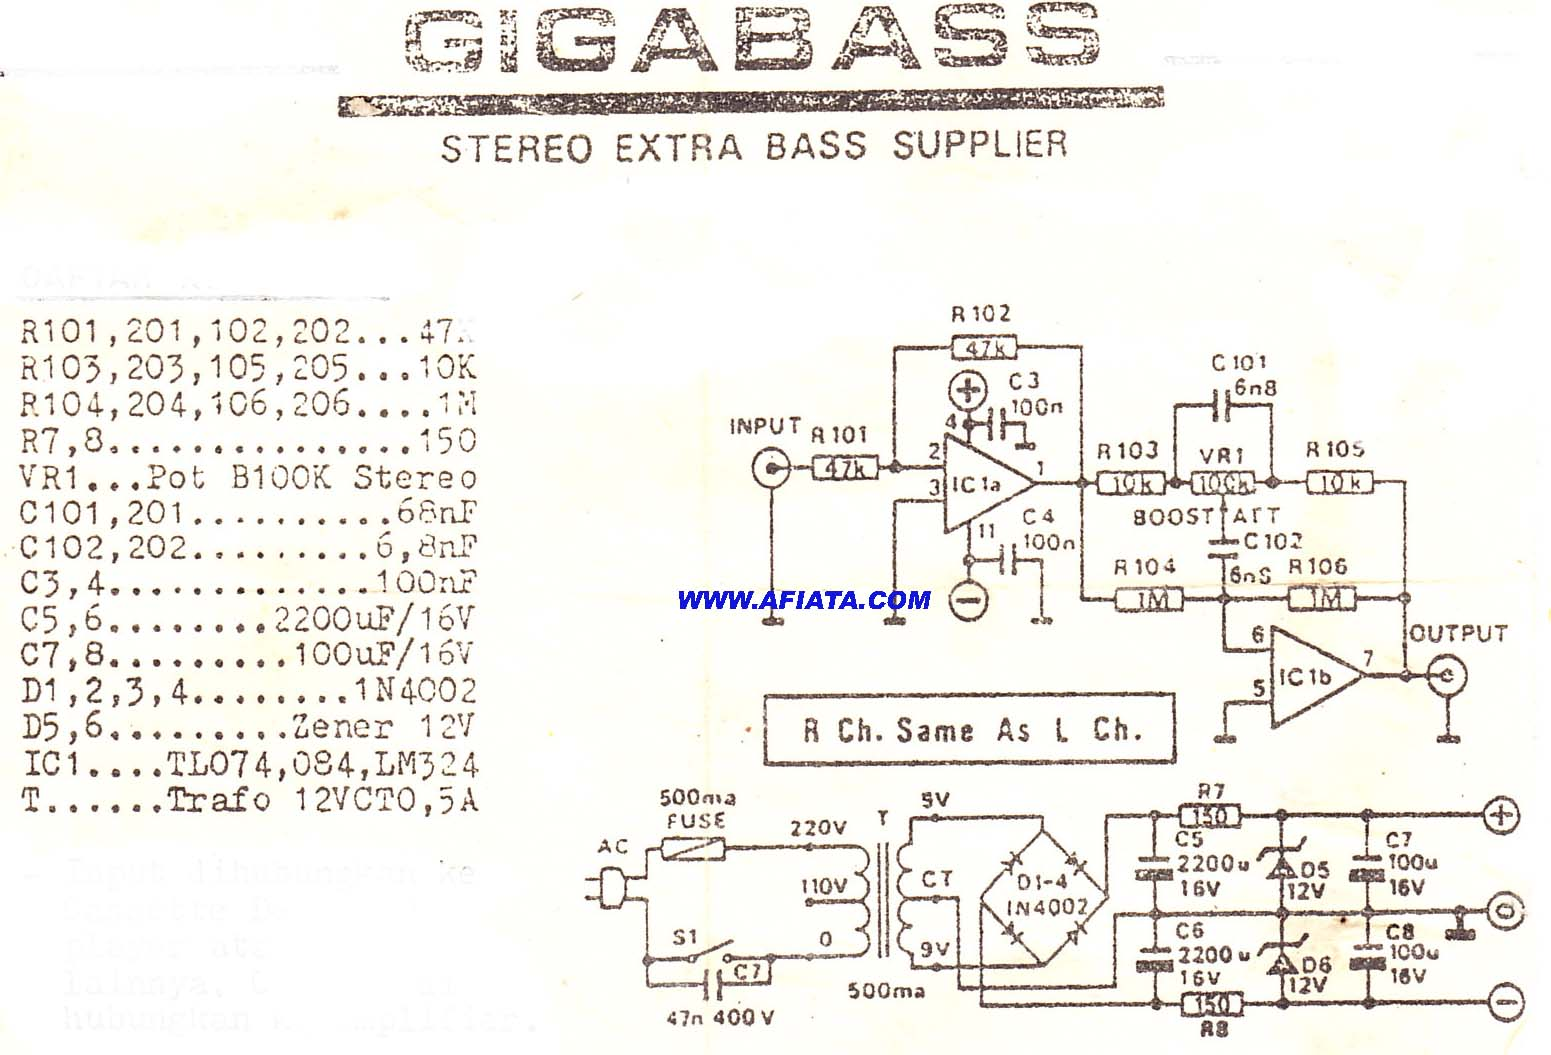 Op Amp Circuit Electronic Diagram And Layout Rf Amplifiers This Based On The Lm324 Ic Stereo Giga Bass Using Tl074 Tl084